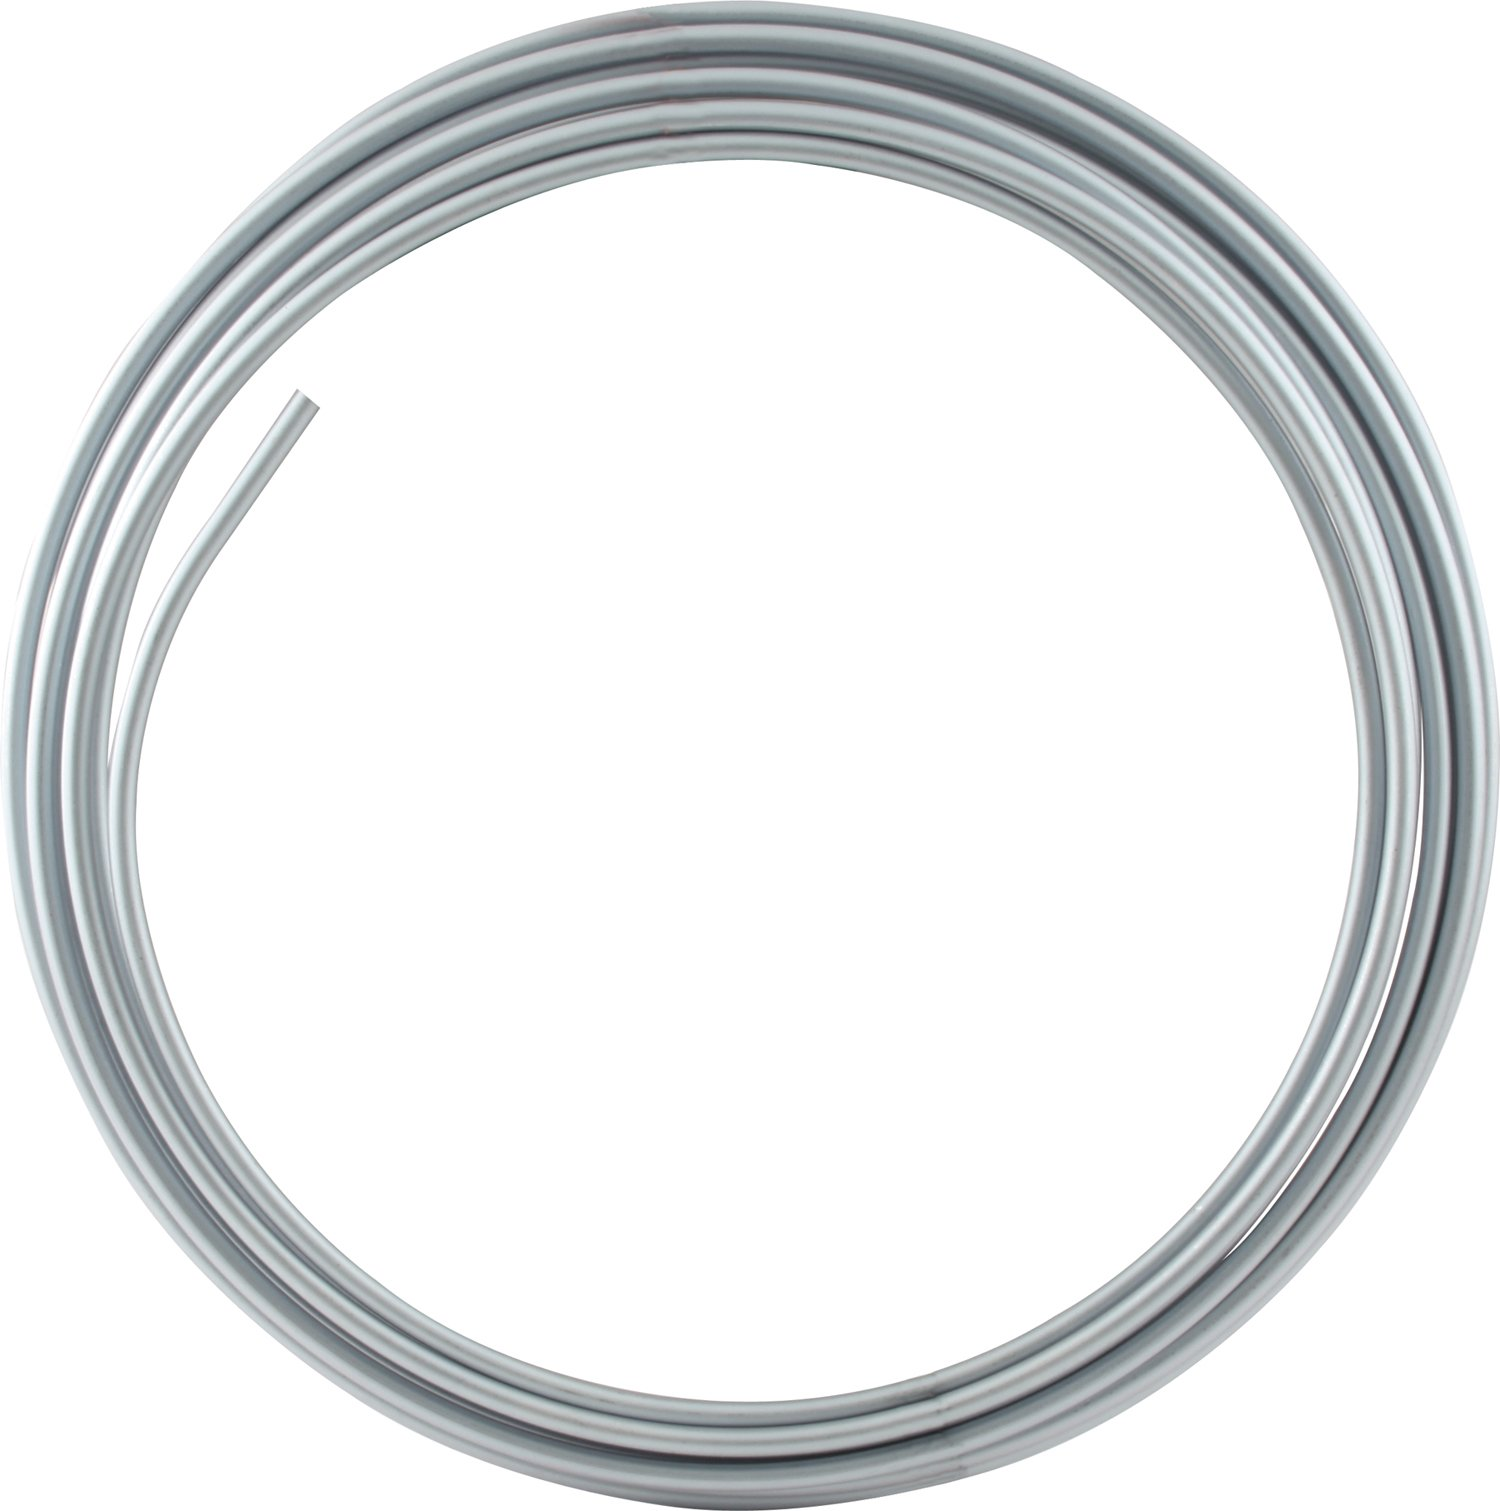 Allstar ALL48327 25-Feet 5/16-Inches Diameter 304 Zinc plated Steel Coiled Tubing Fuel Line